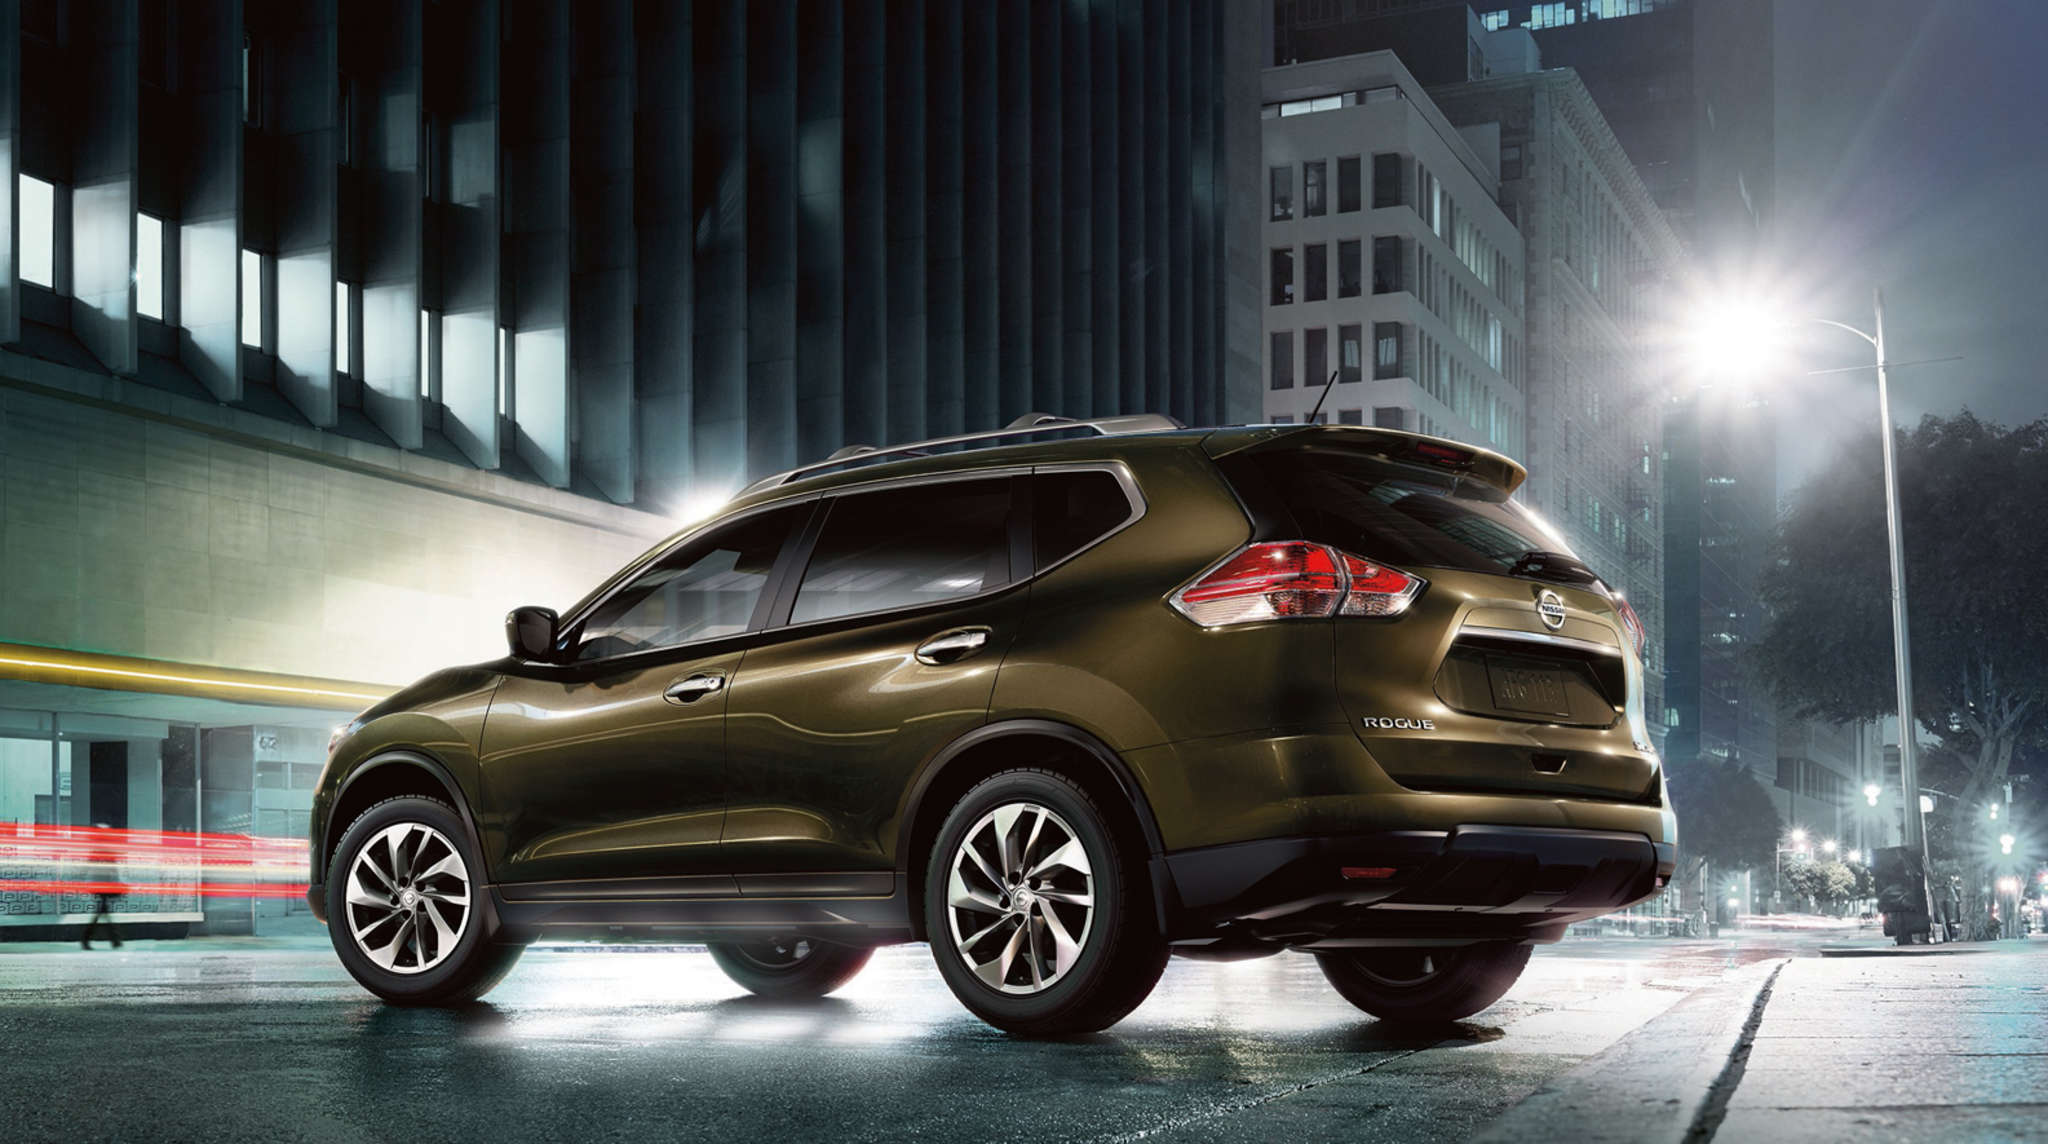 The 2016 Nissan Rogue retains many of the same features from its redesign in 2014, with a few new added items for this model.